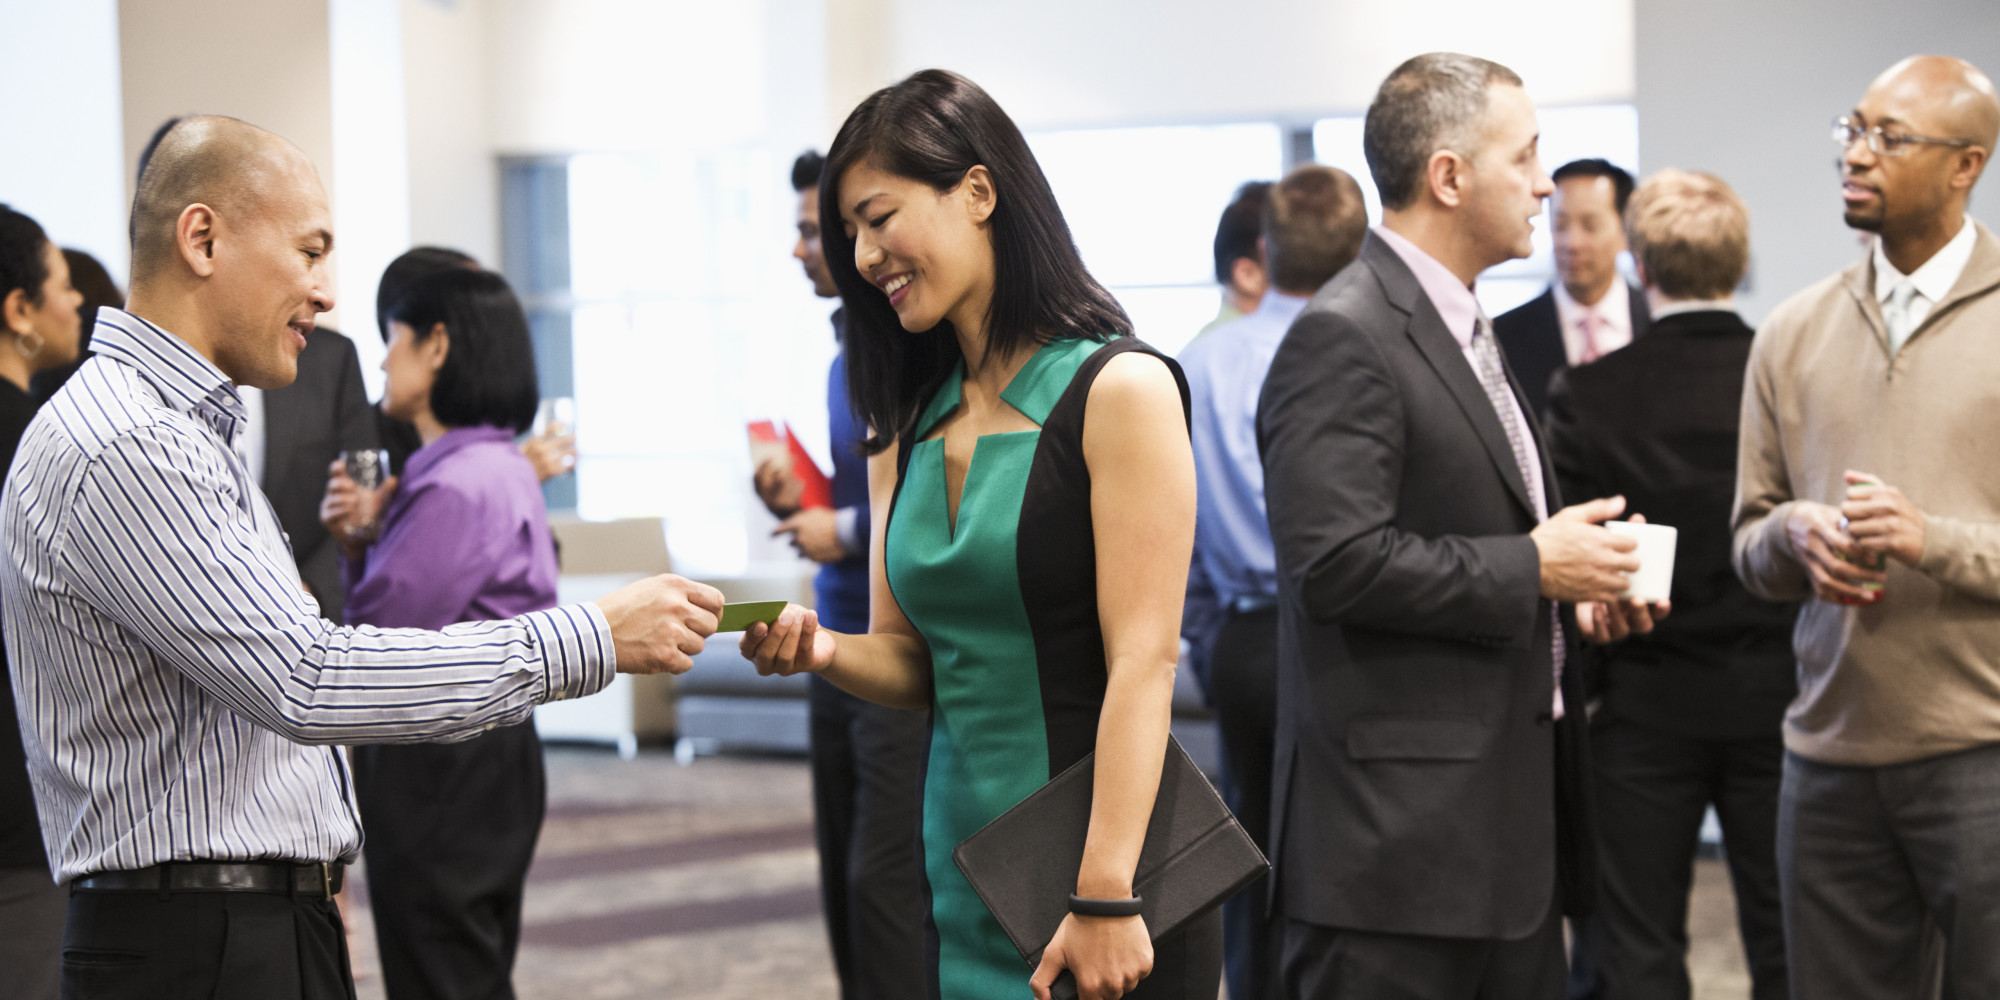 You can never understate the importance of networking